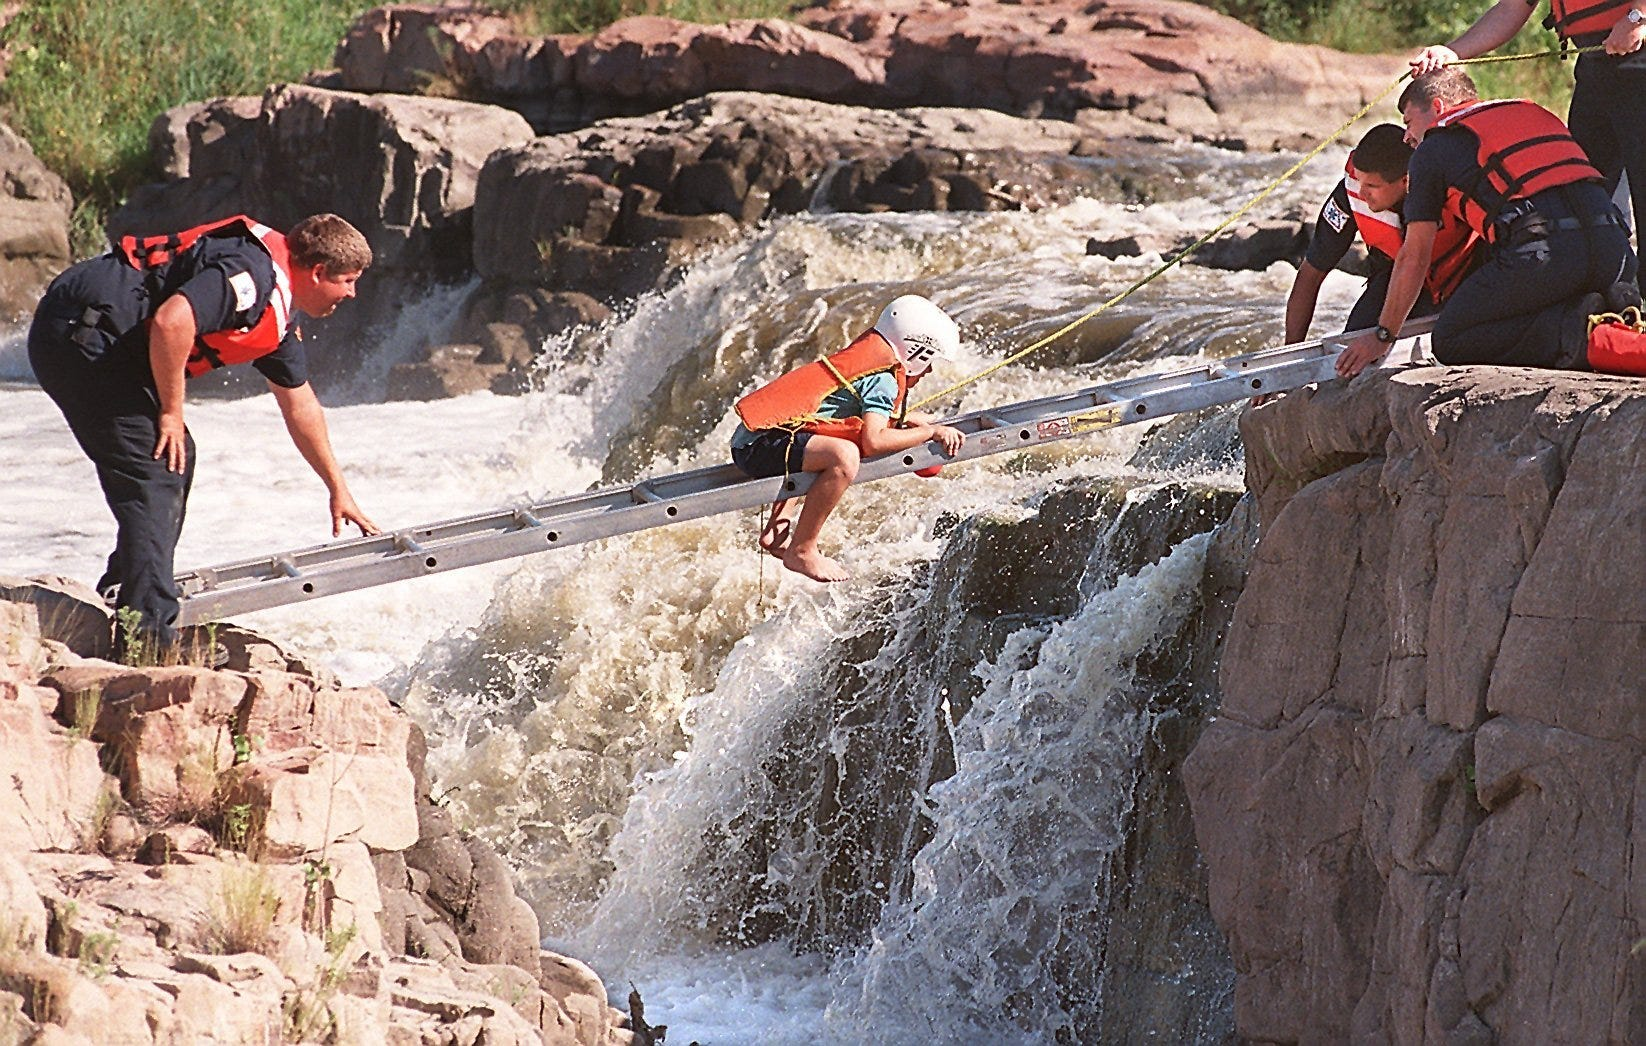 Sioux Falls councilors want more vetting of Falls Park safety | Argus Leader